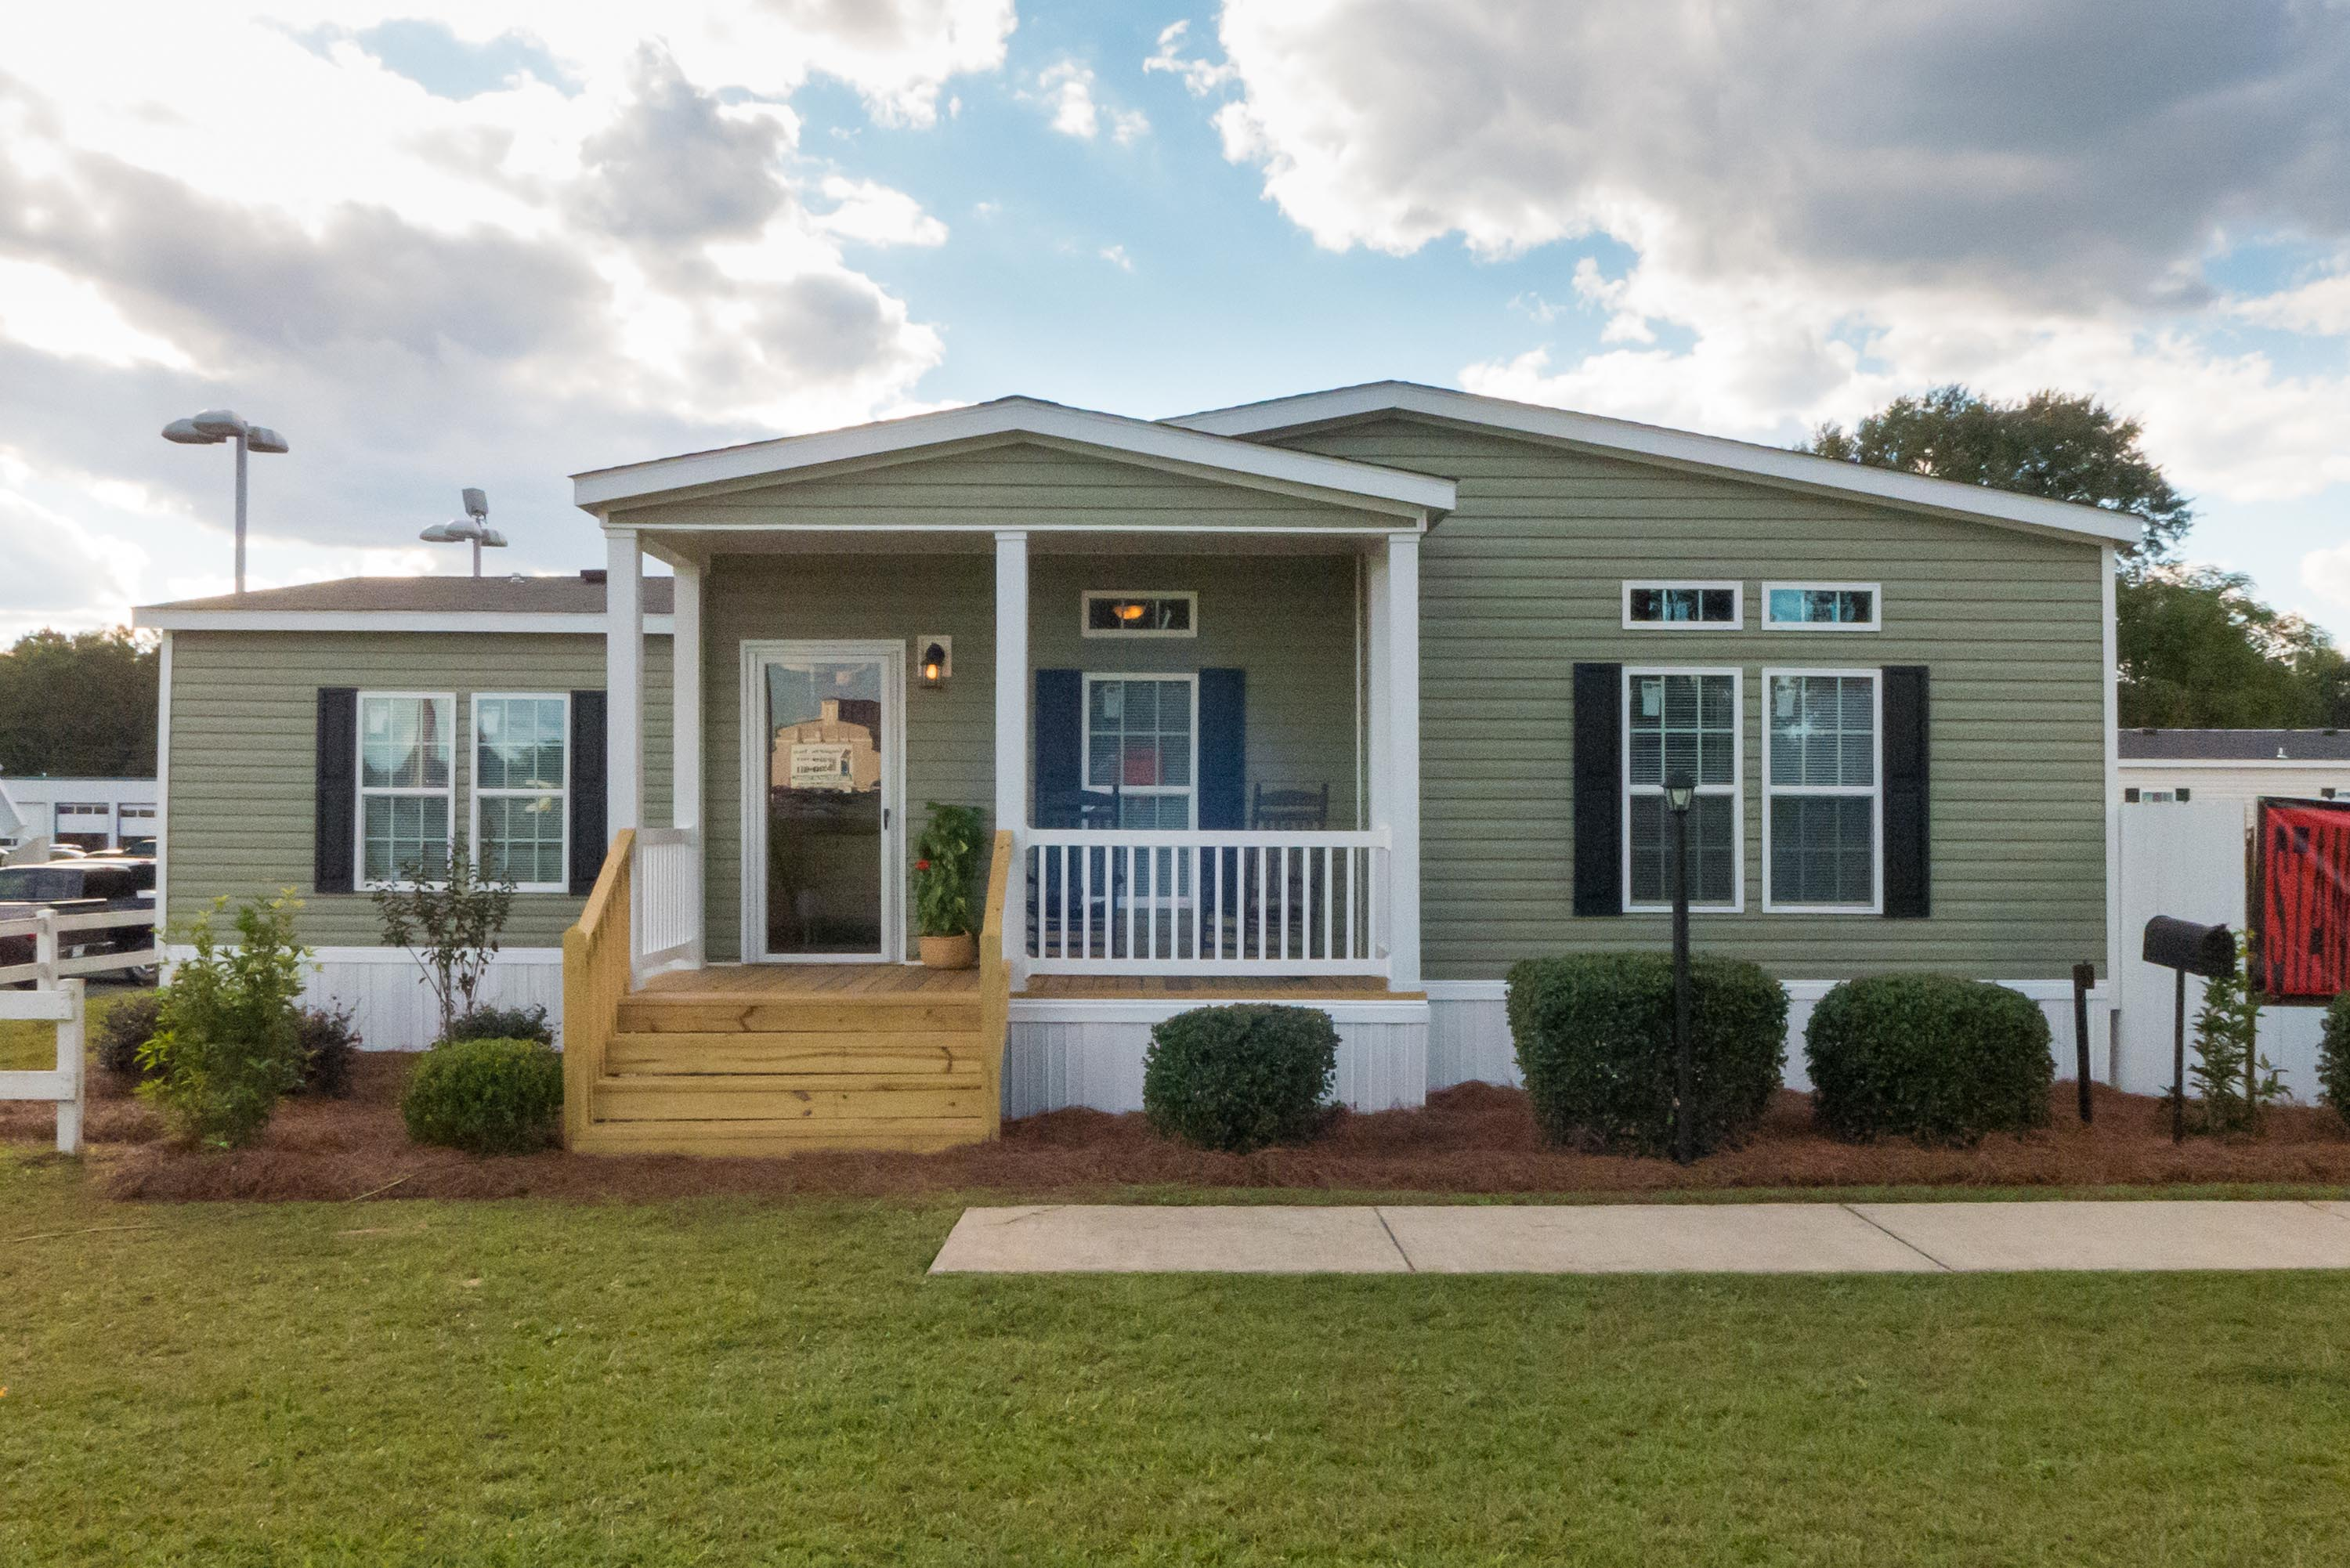 Wonderful Wayne Frier Mobile Homes for Cozy House Design Inspirations: Wayne Frier Mobile Homes | Mobile Home Dealers In Jacksonville Fl | Mobile Homes For Rent In Dothan Al